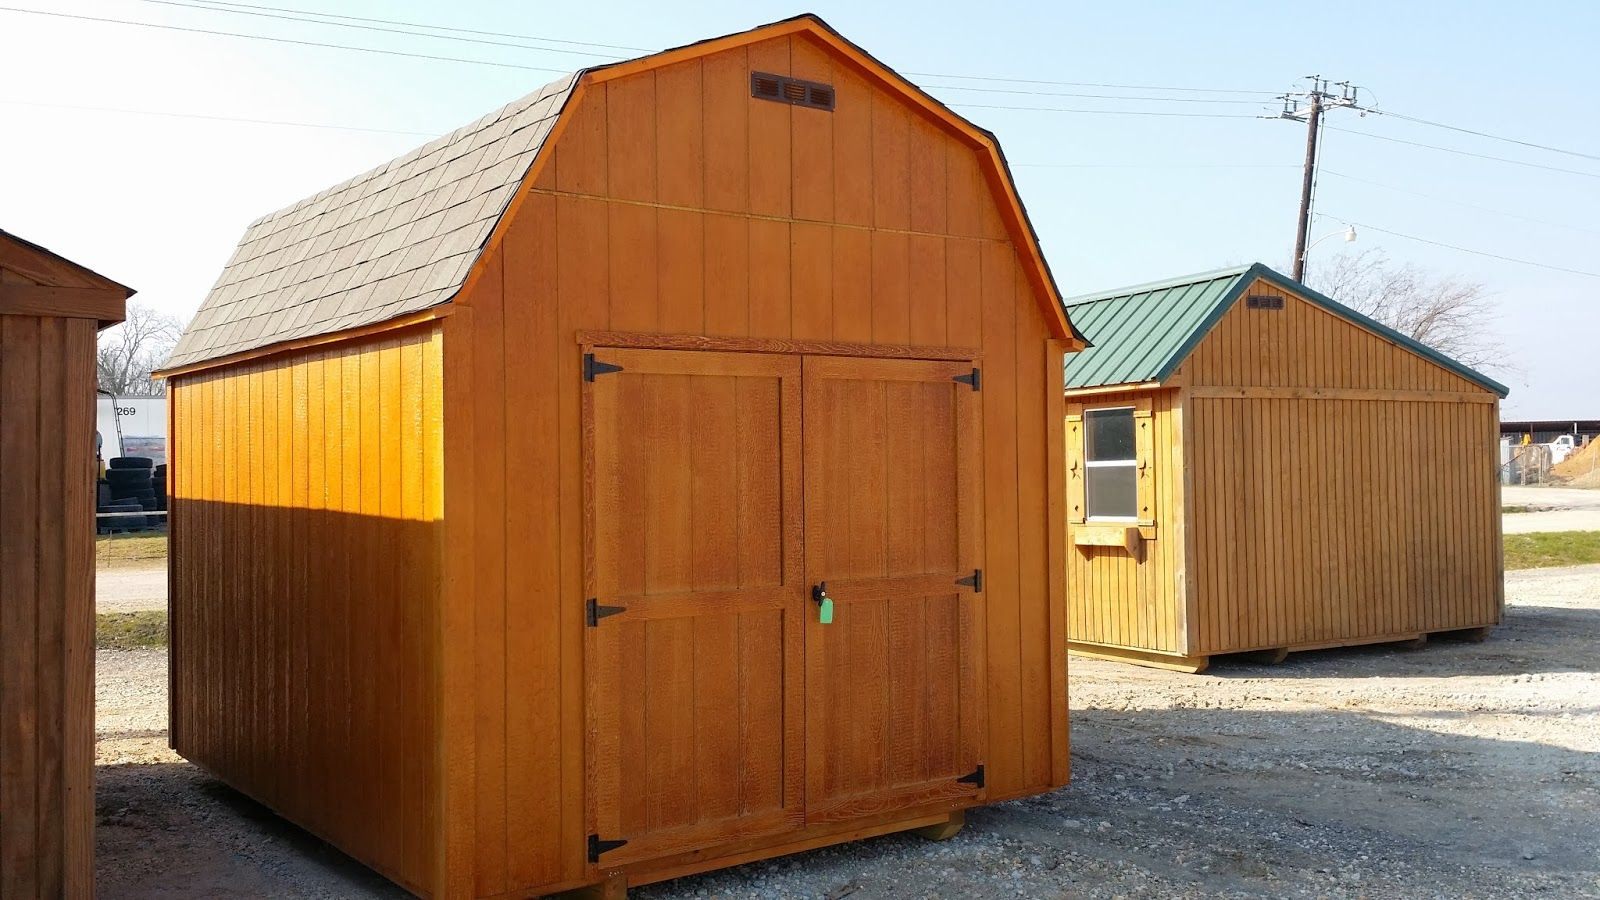 Genial Fort Worth Lelandu0027s: Lelandu0027s New Portable Buildings Wood Product Line.